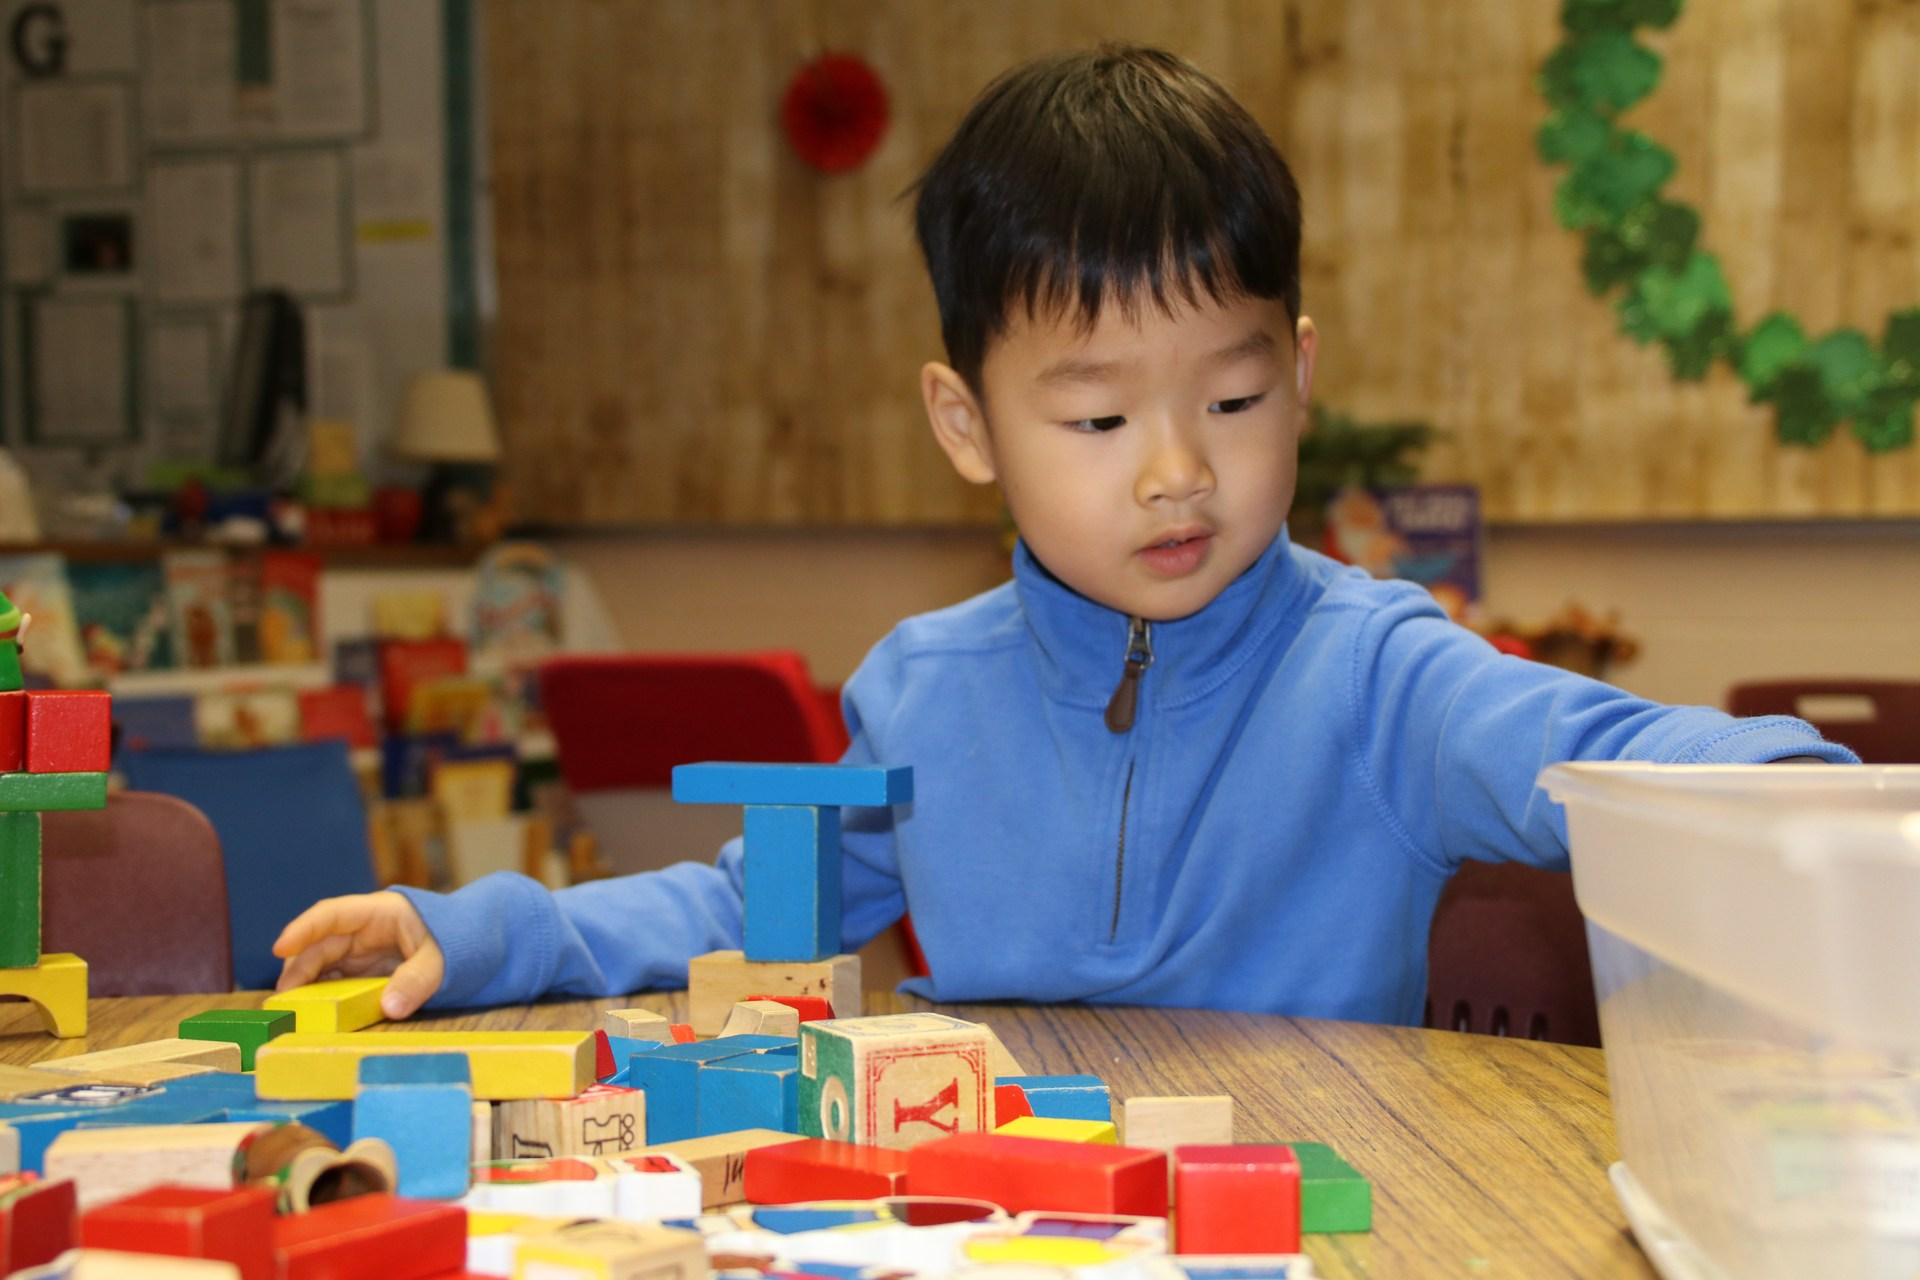 preschool boy in blue shirt playing with blocks at table